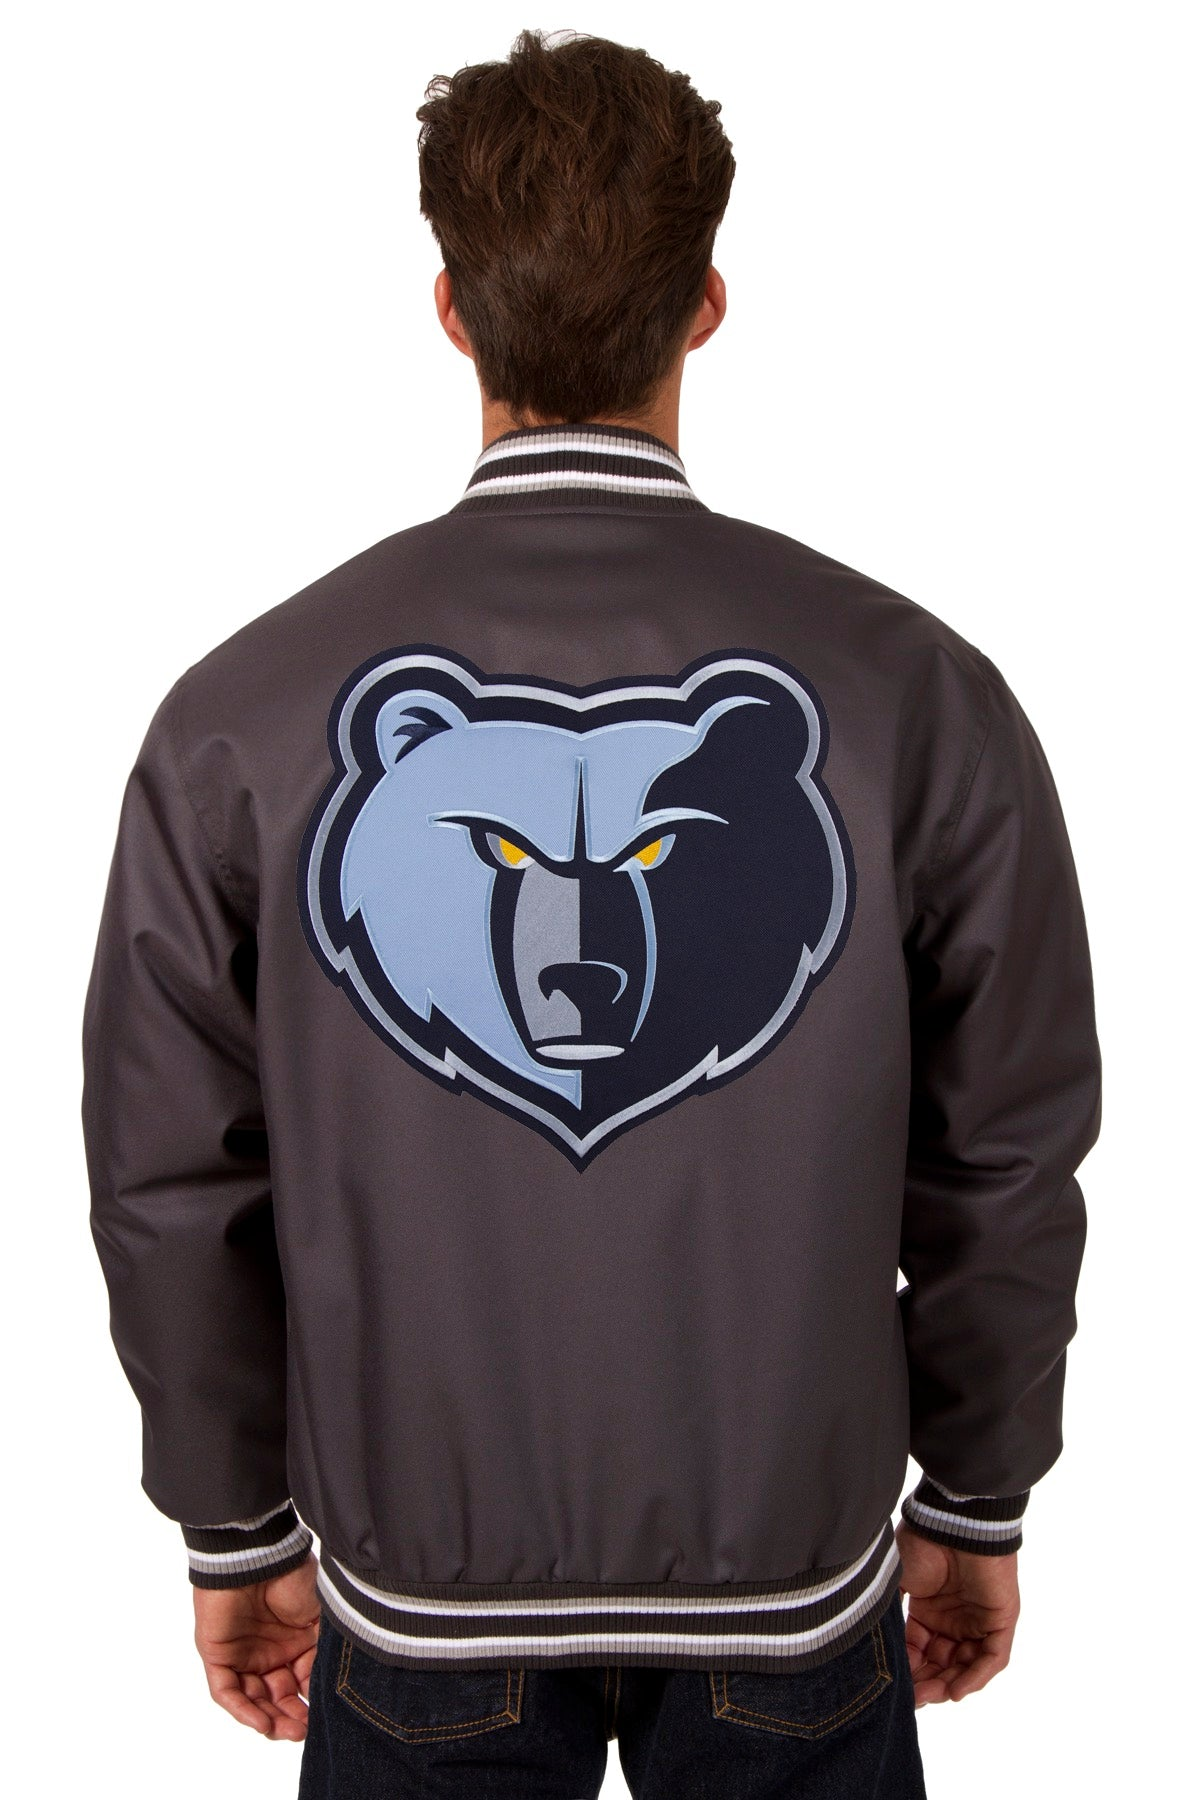 new product 7ead7 15f0b ... Memphis Grizzlies Poly Twill Varsity Jacket - Charcoal ...